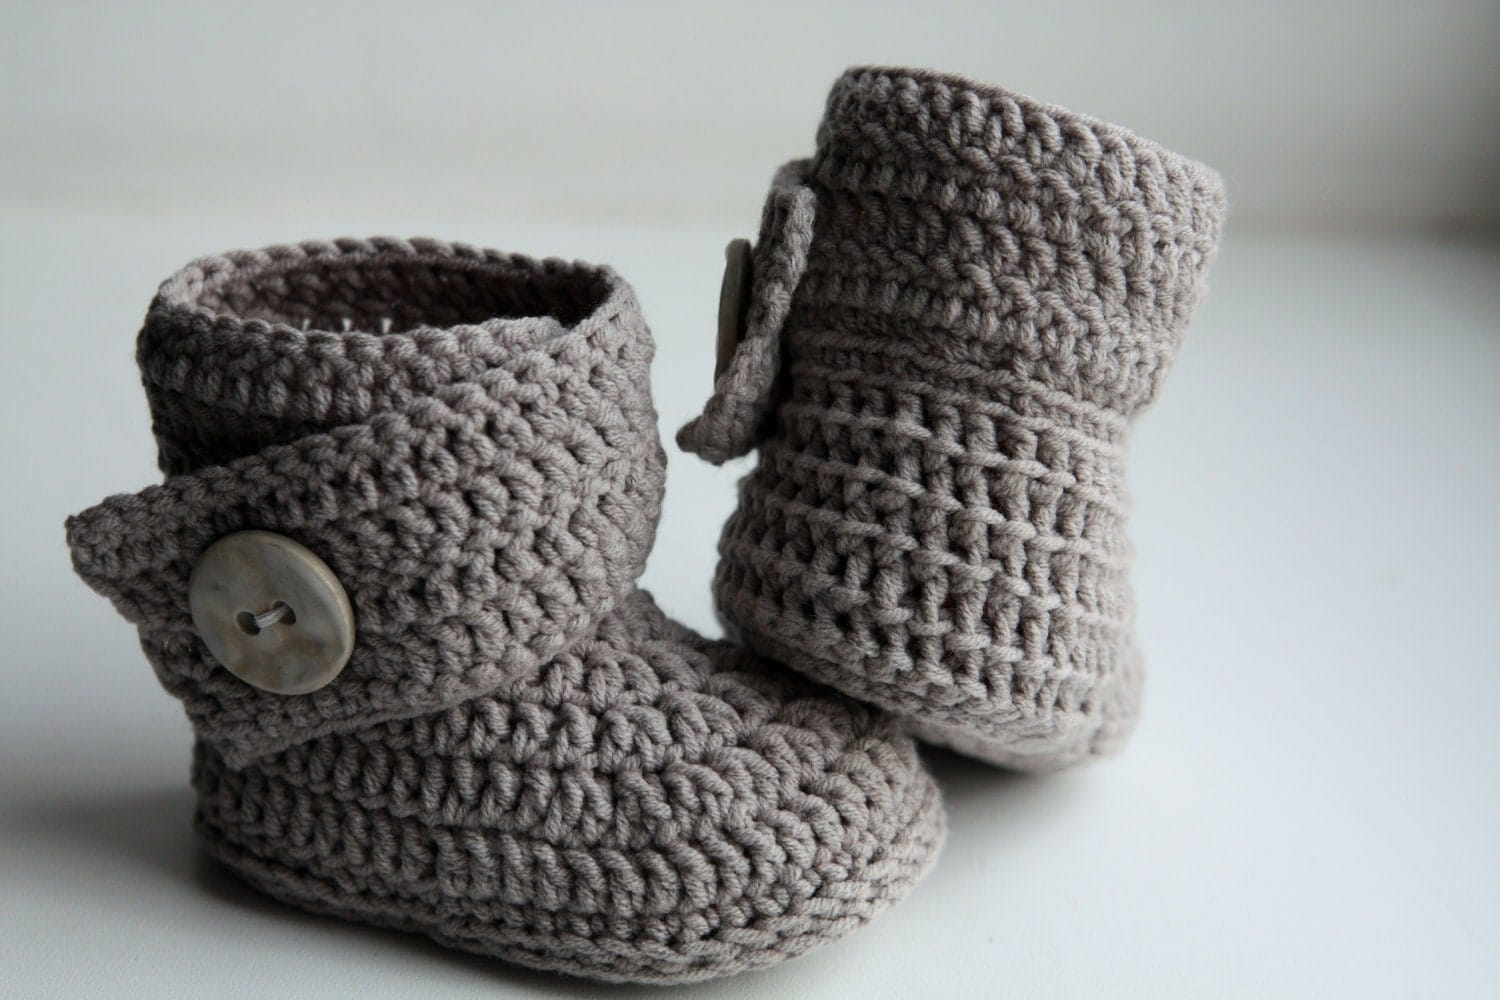 Ugg Boots Knit Ripple Afghan Instructions Mit Hillel